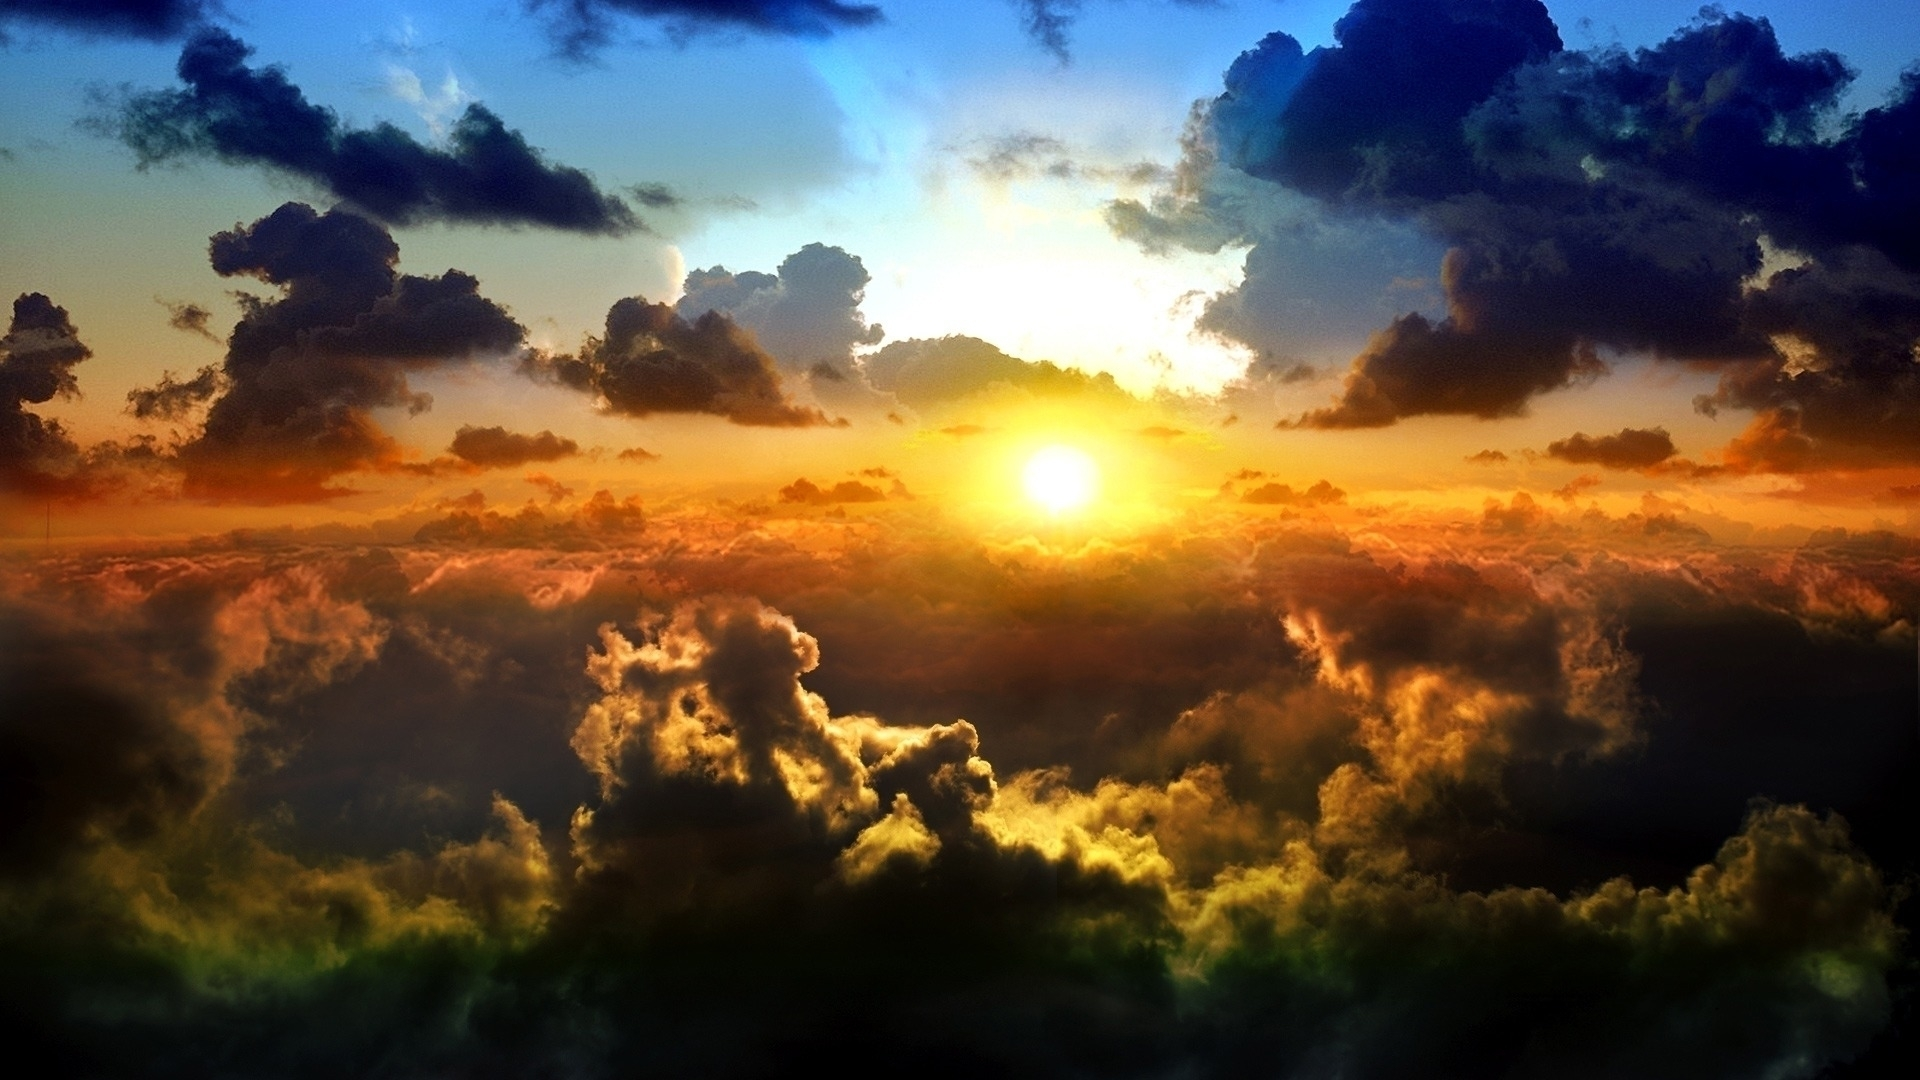 clouds on sunset Wallpaper Background 26092 1920x1080